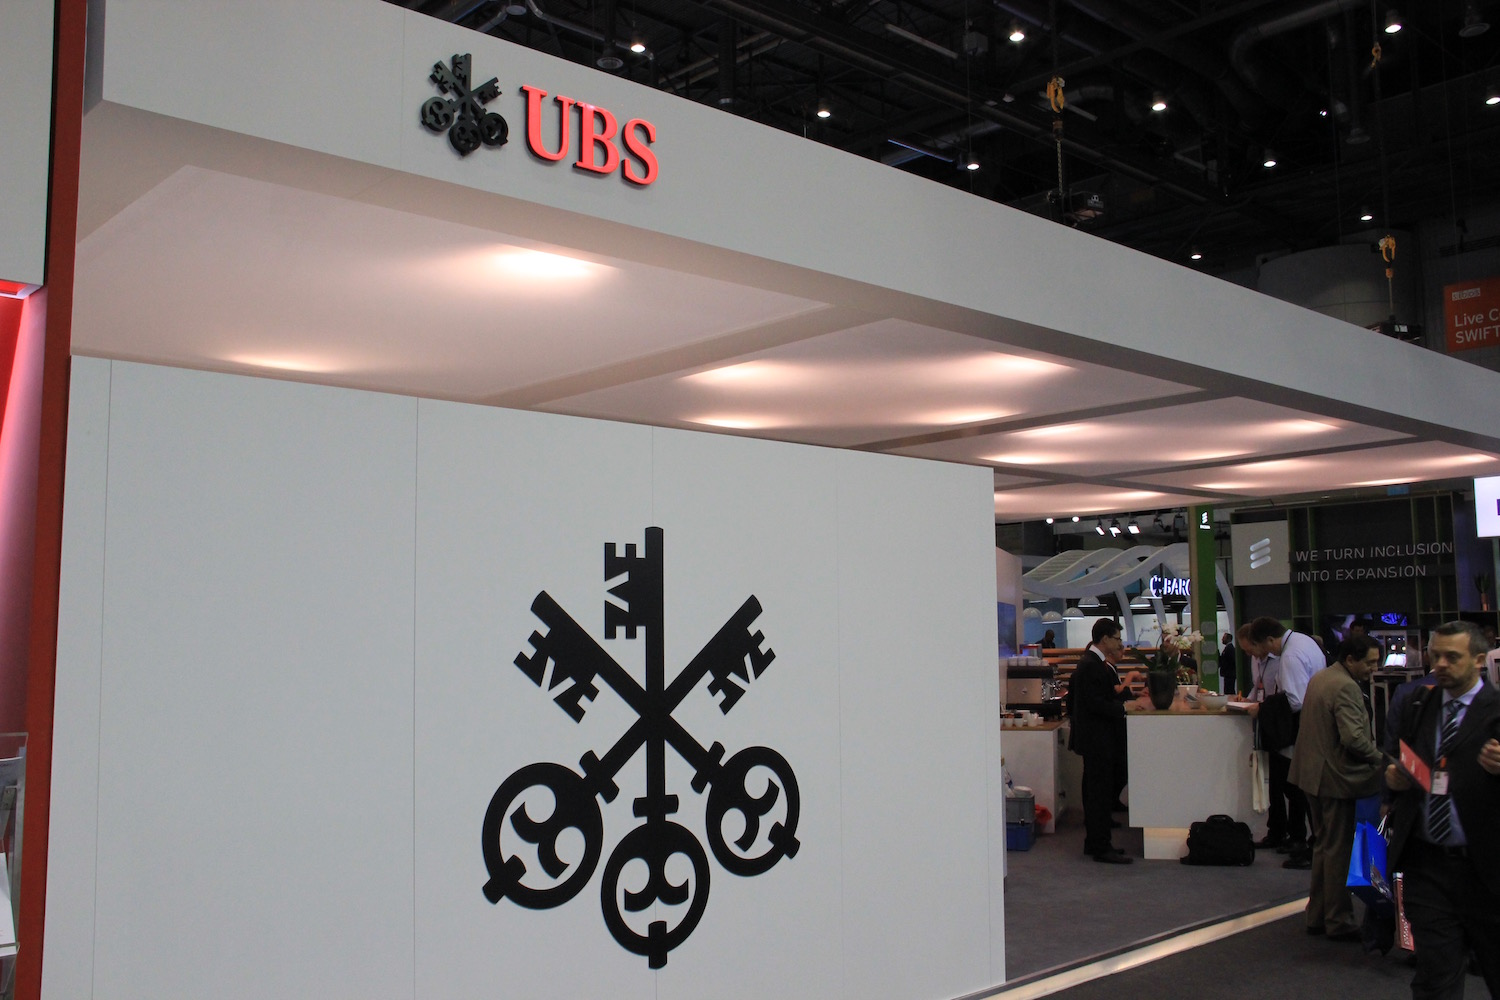 UBS at Sibos